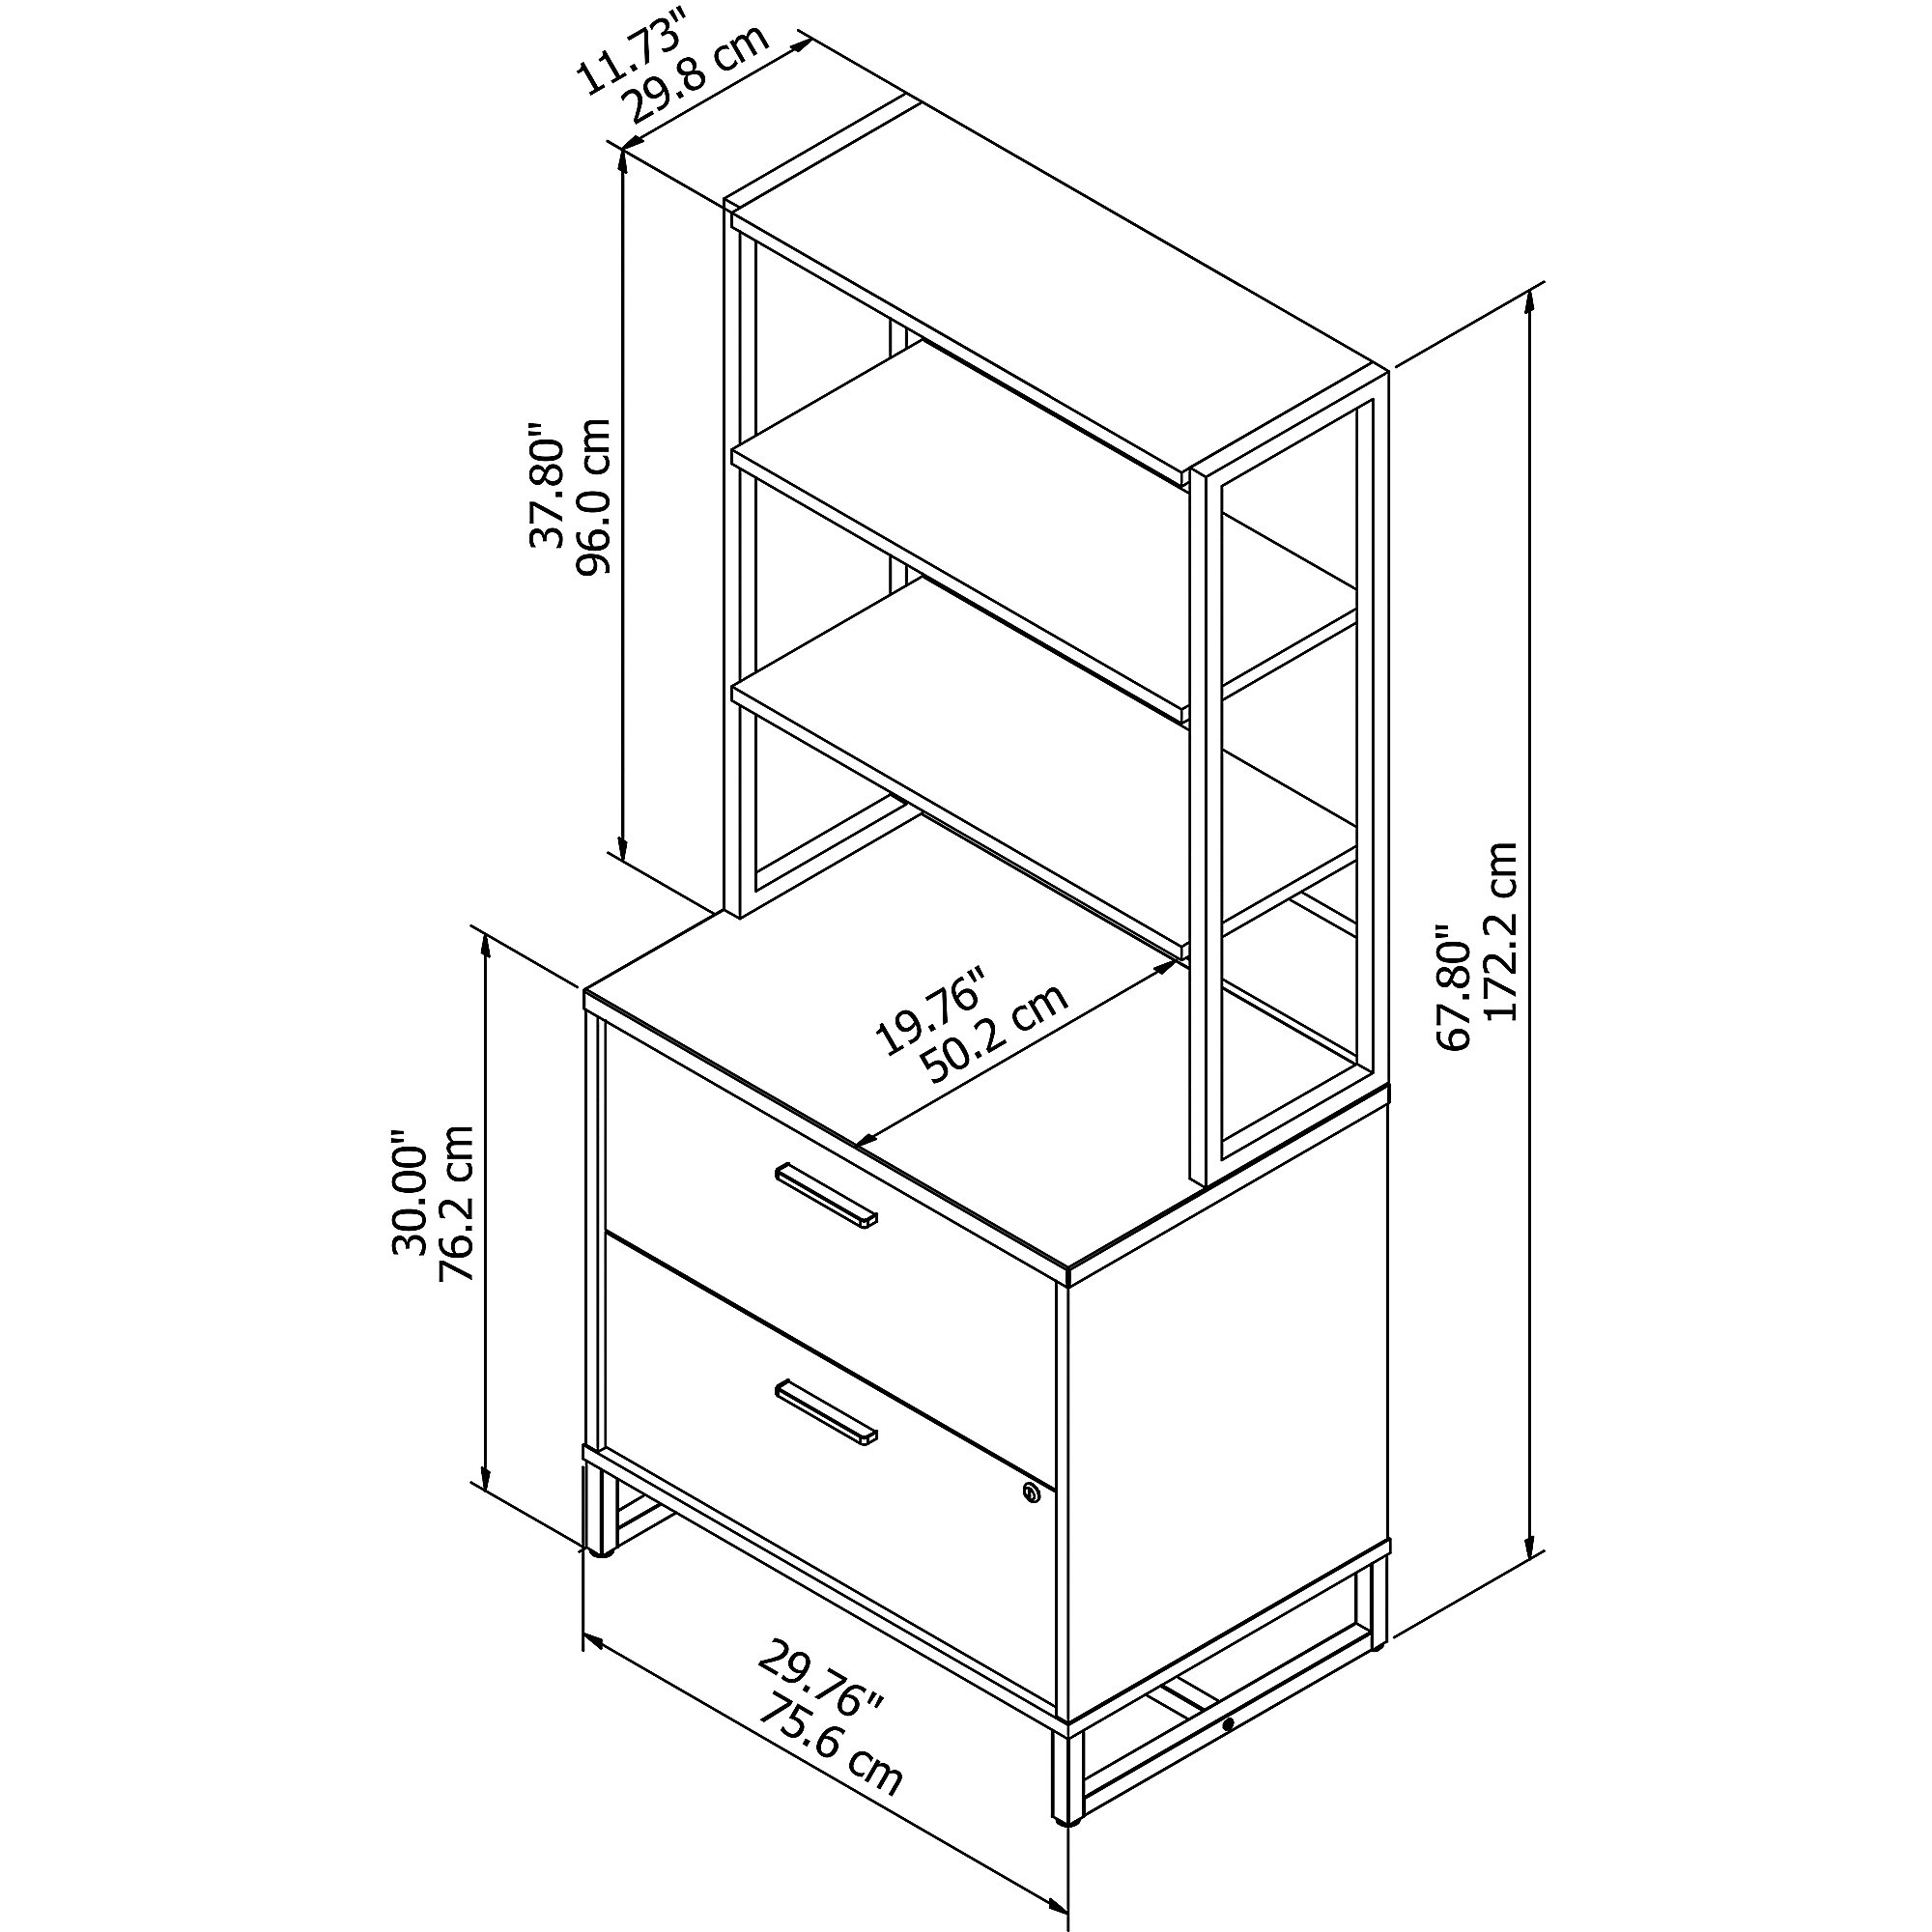 office by kathy ireland wall cabinet dimensions